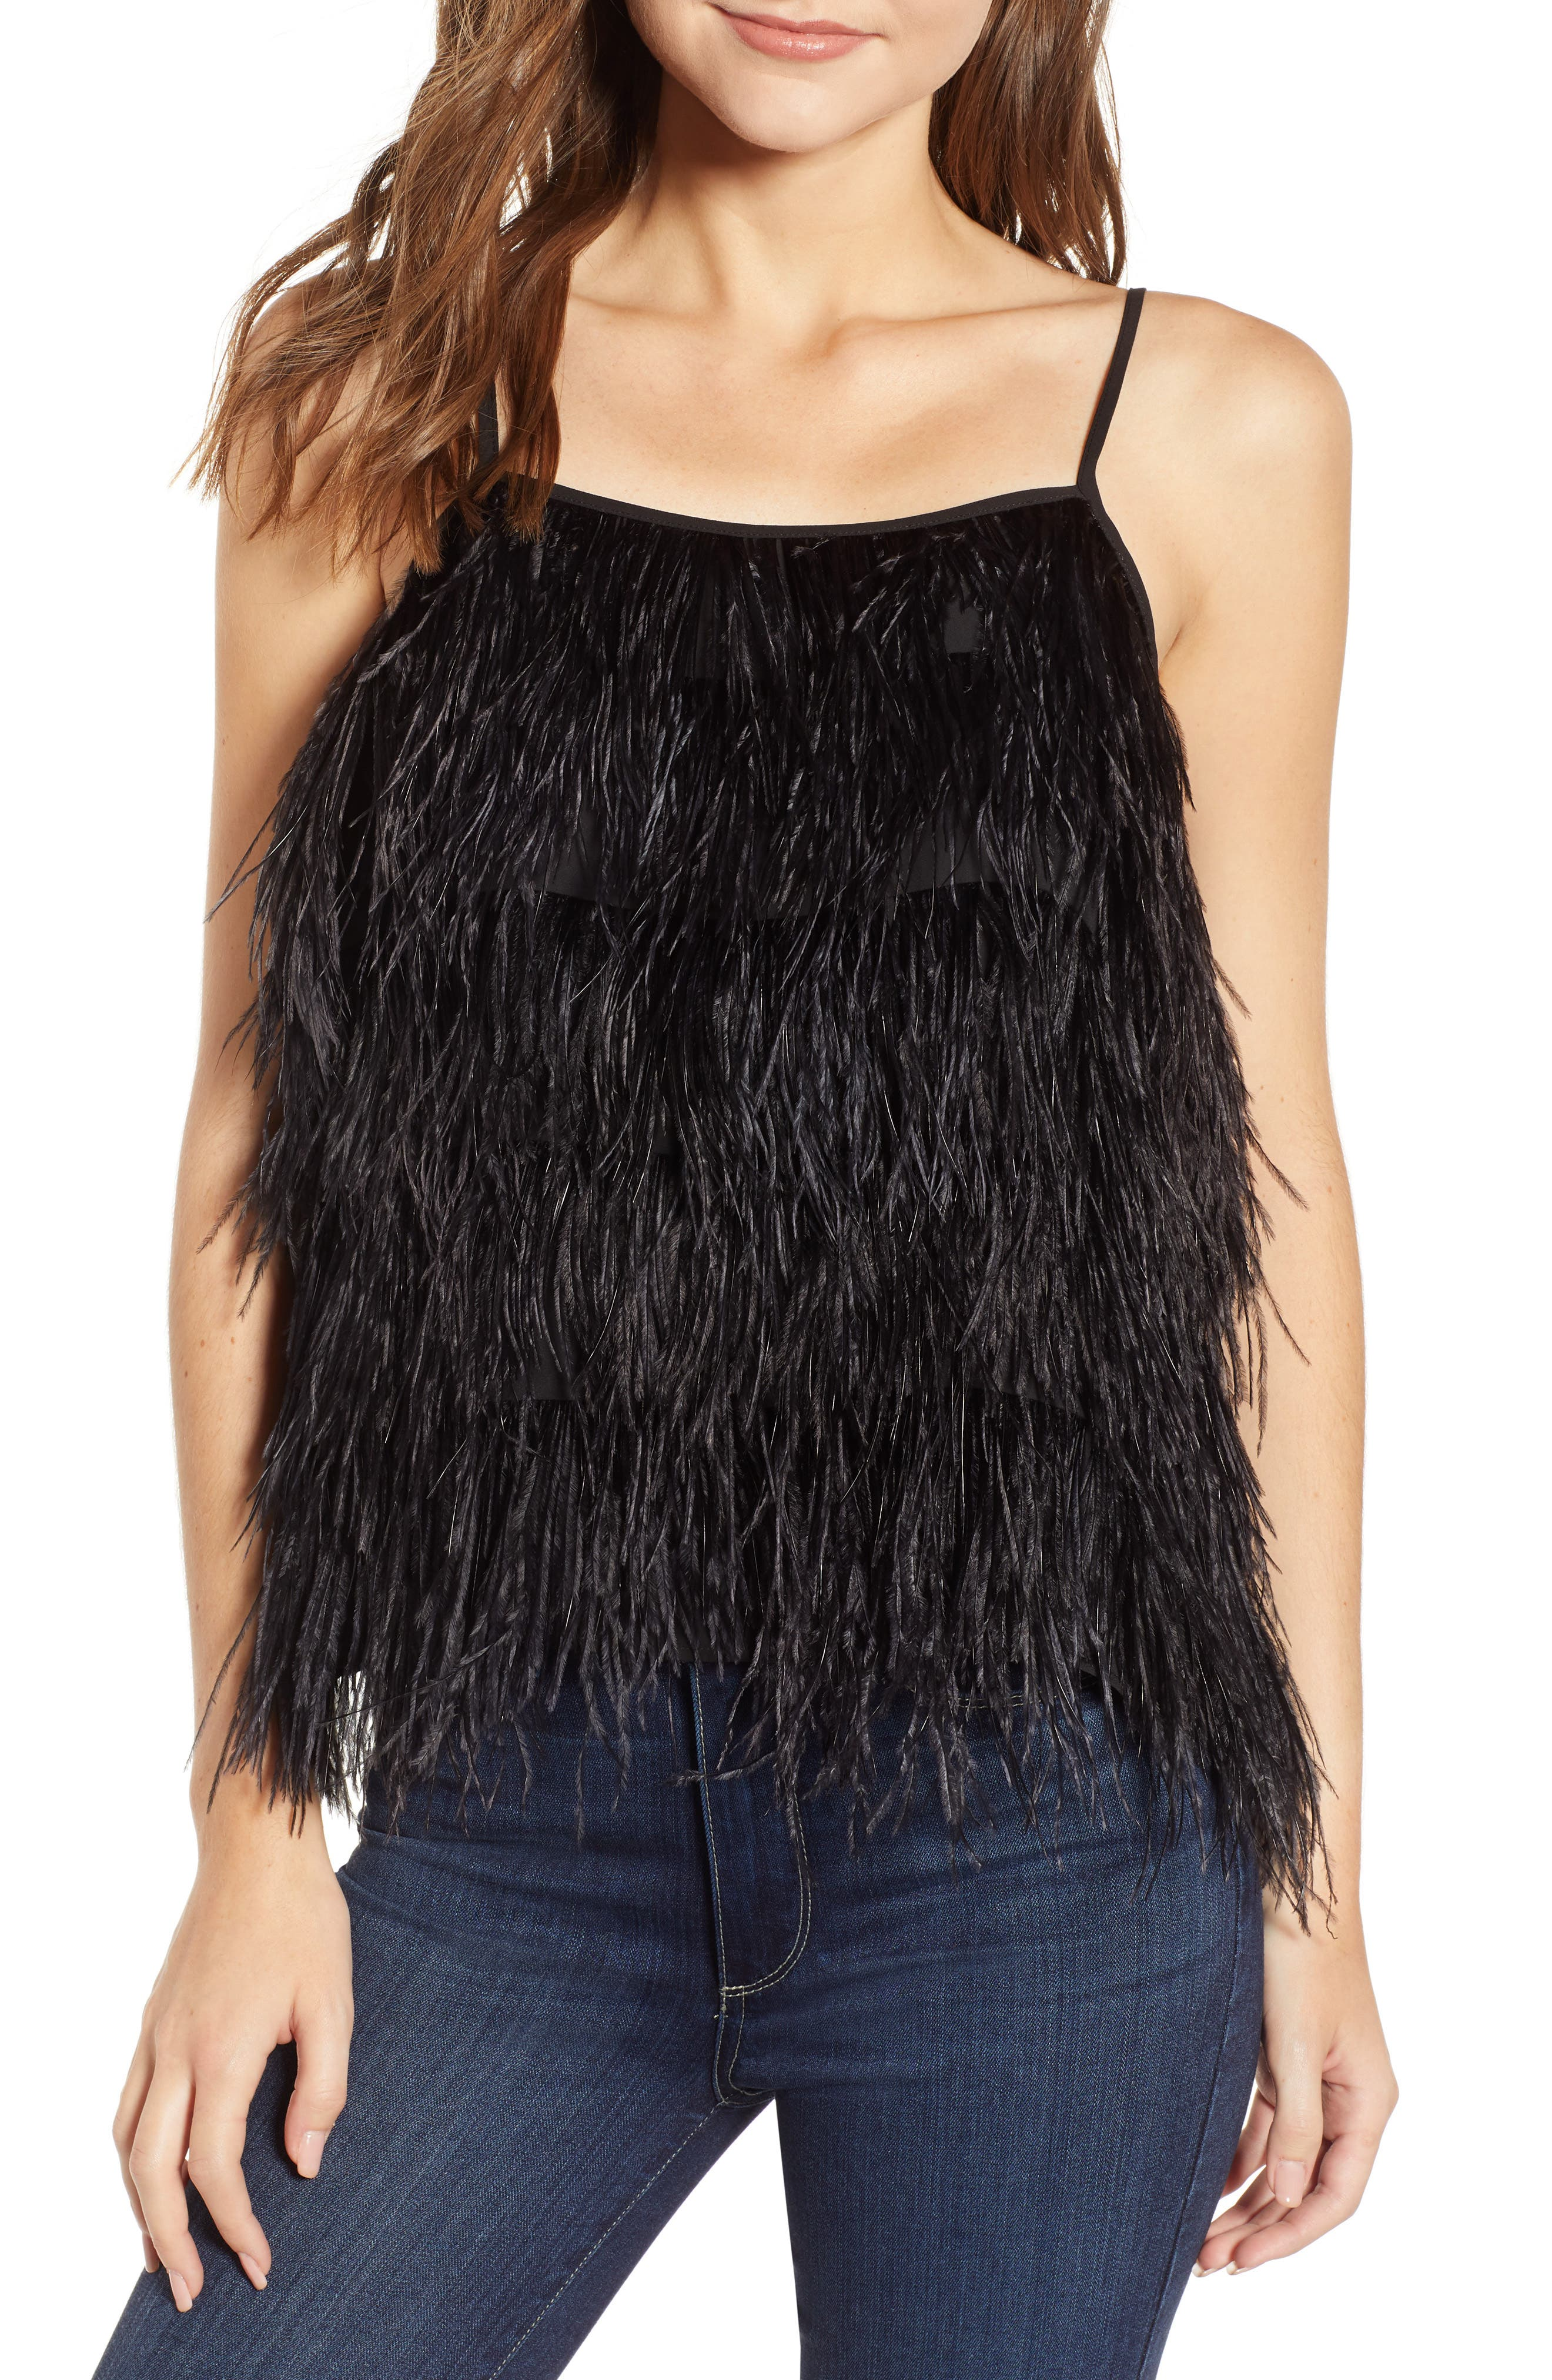 Chelsea28 Feather Camisole, Black